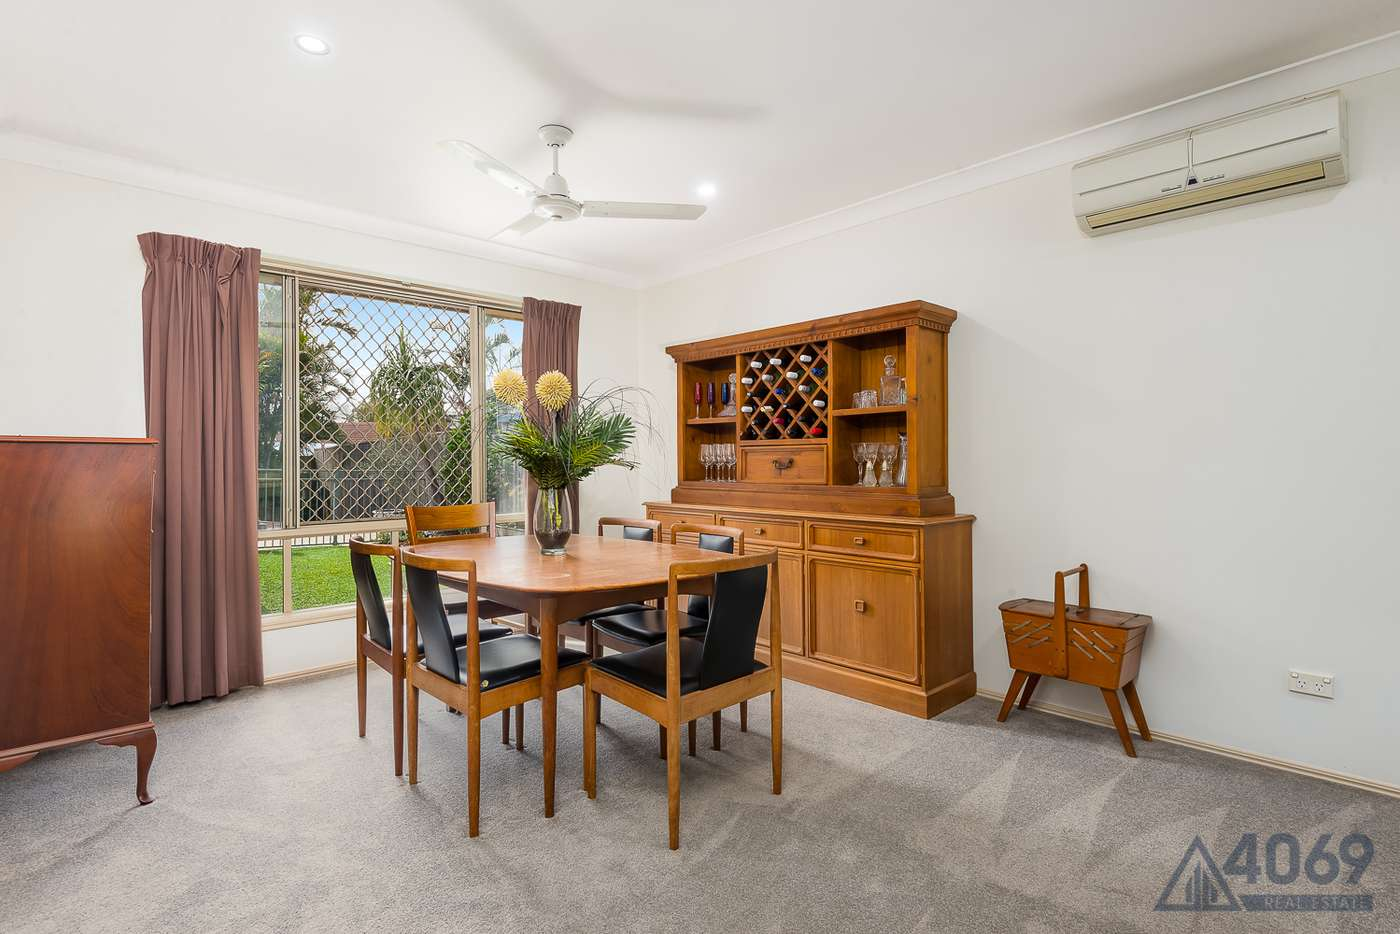 Fifth view of Homely house listing, 41 Derwent Place, Riverhills QLD 4074